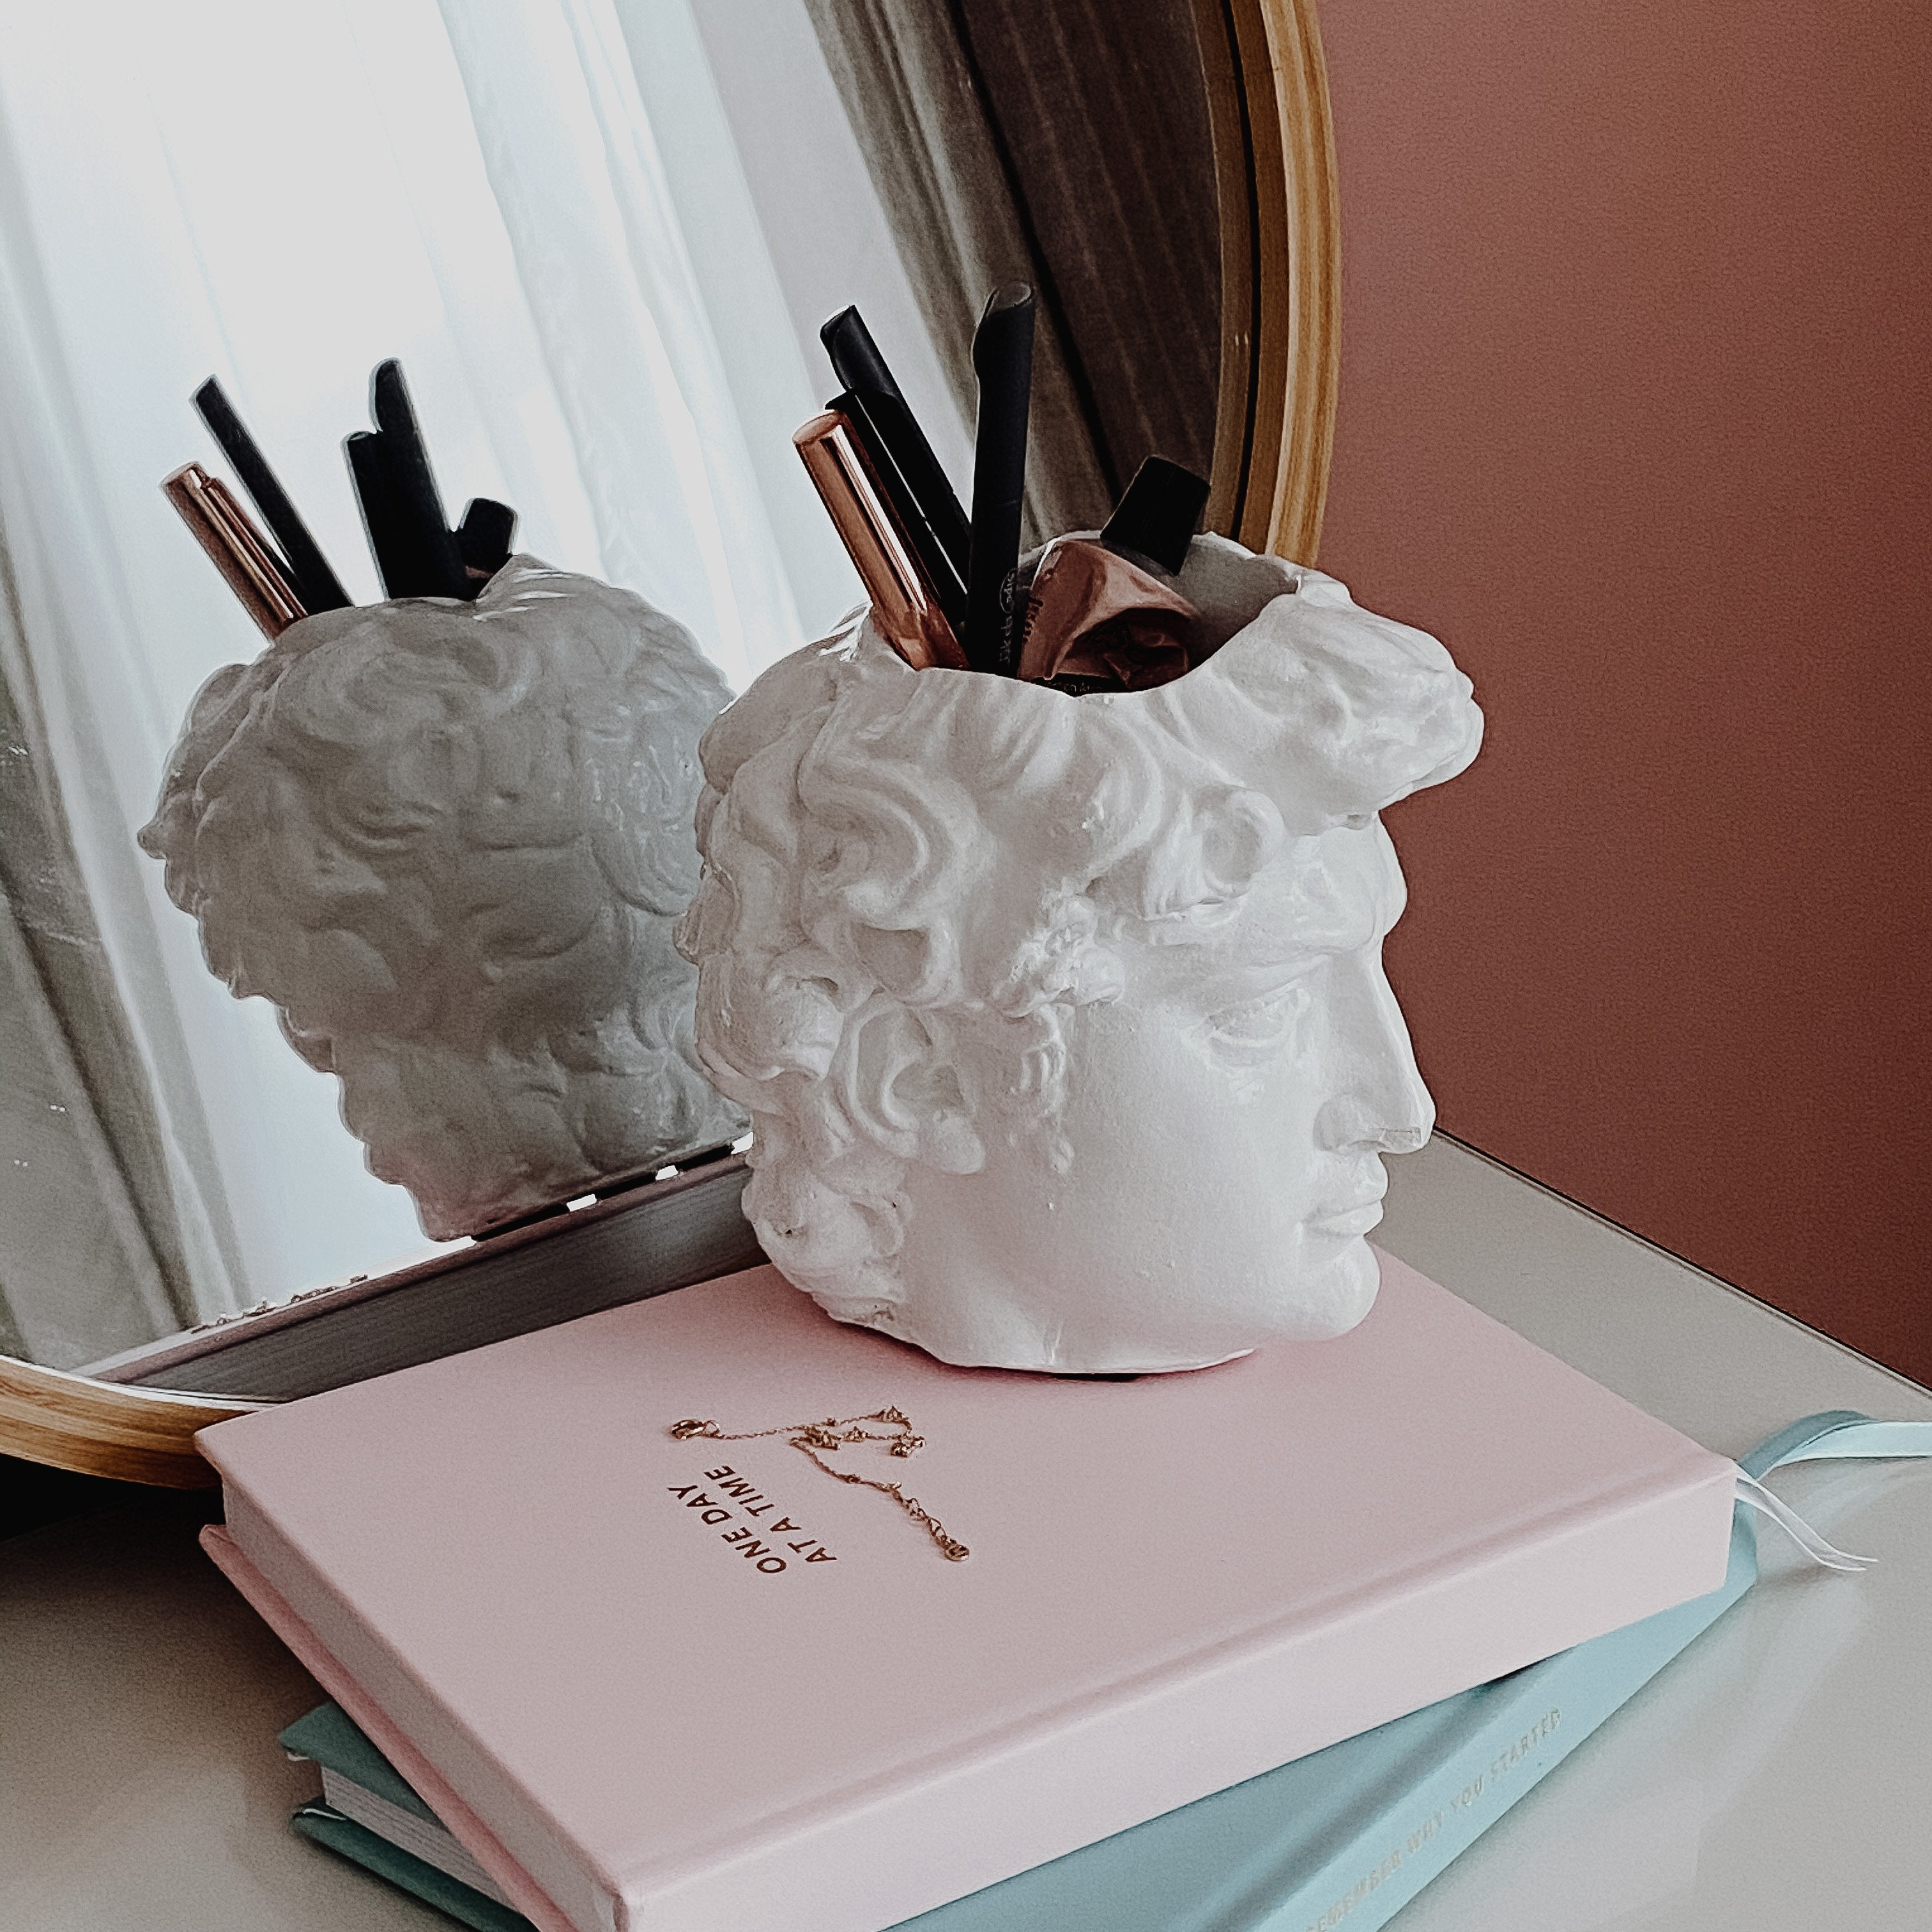 David Bust: Pen holder & Desk Organizer, Handmade